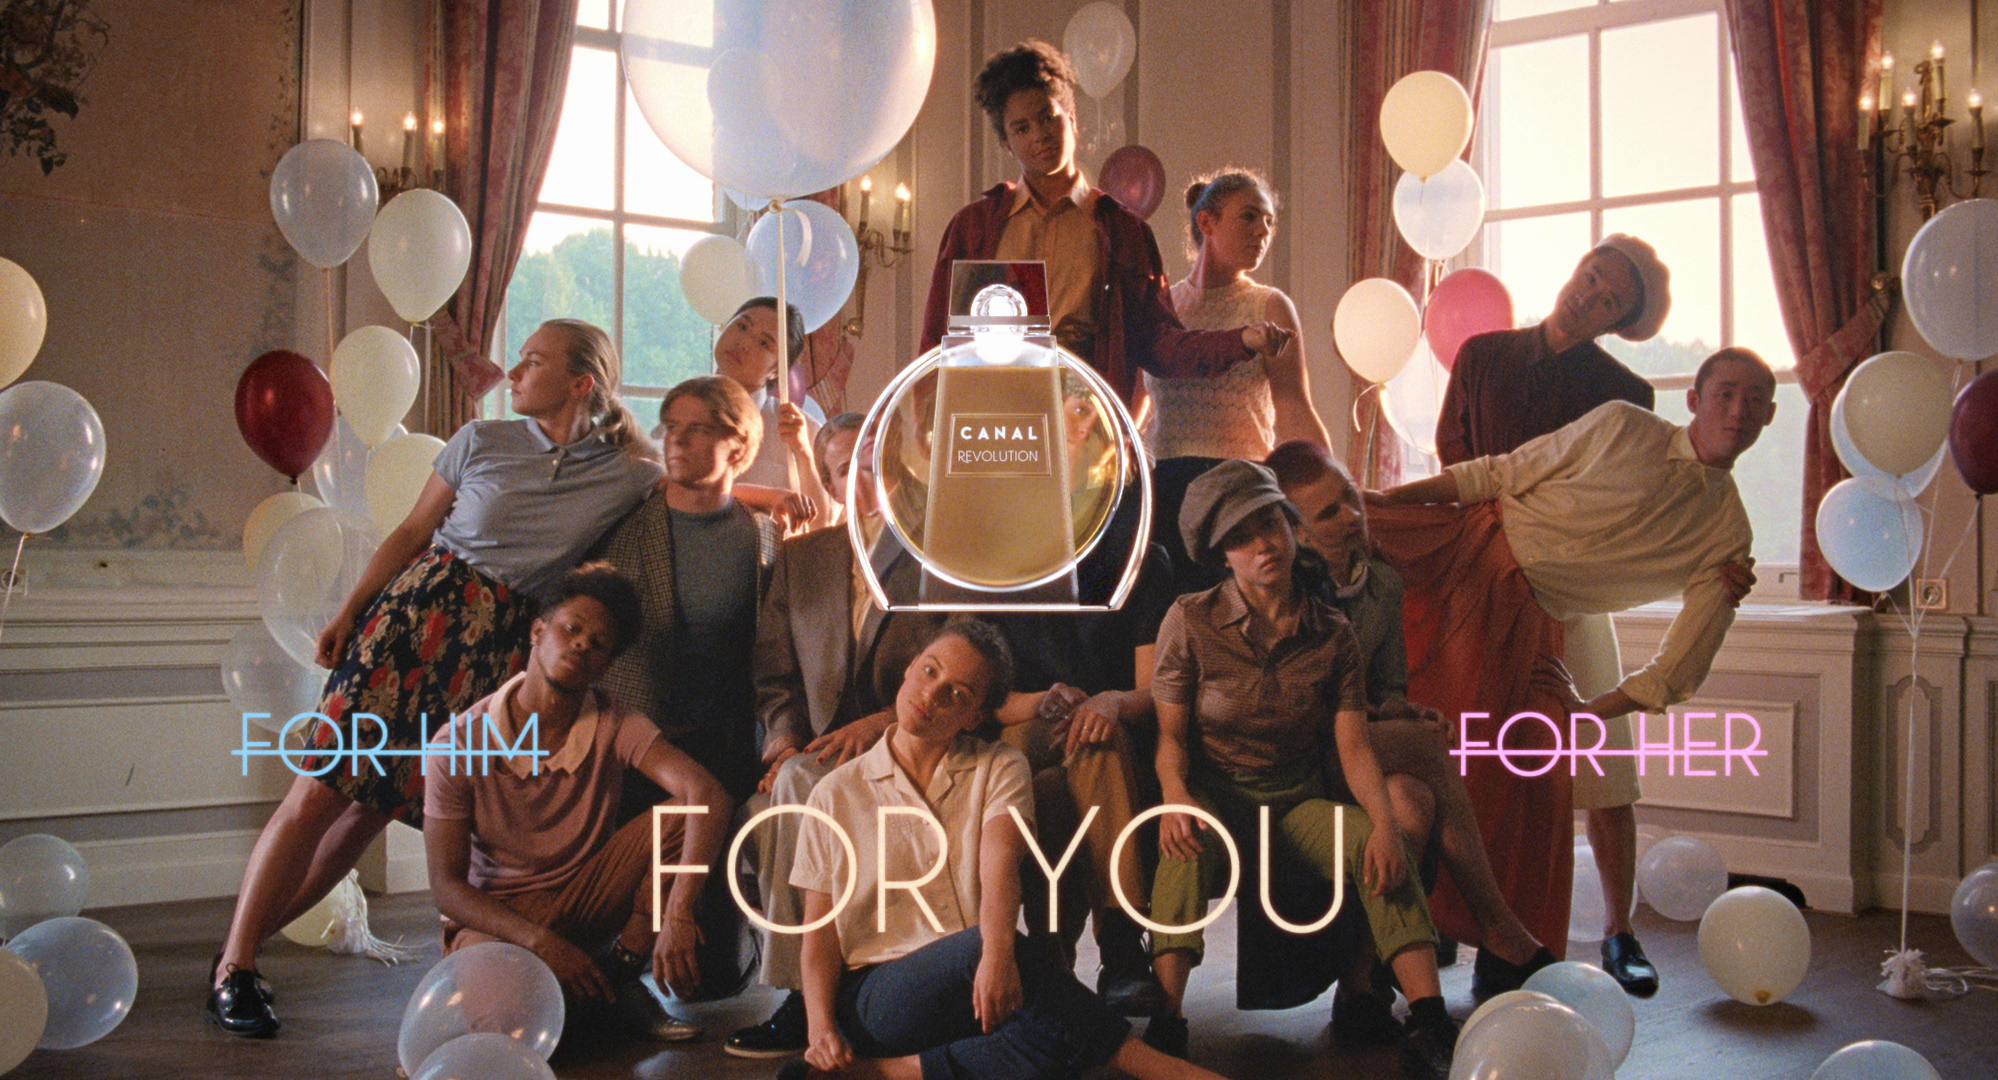 Still from the commercial For You. It's the final shot of the commercial, the group of dancers are posing in the back. Overlaid is a picture of the perfume, with the texts